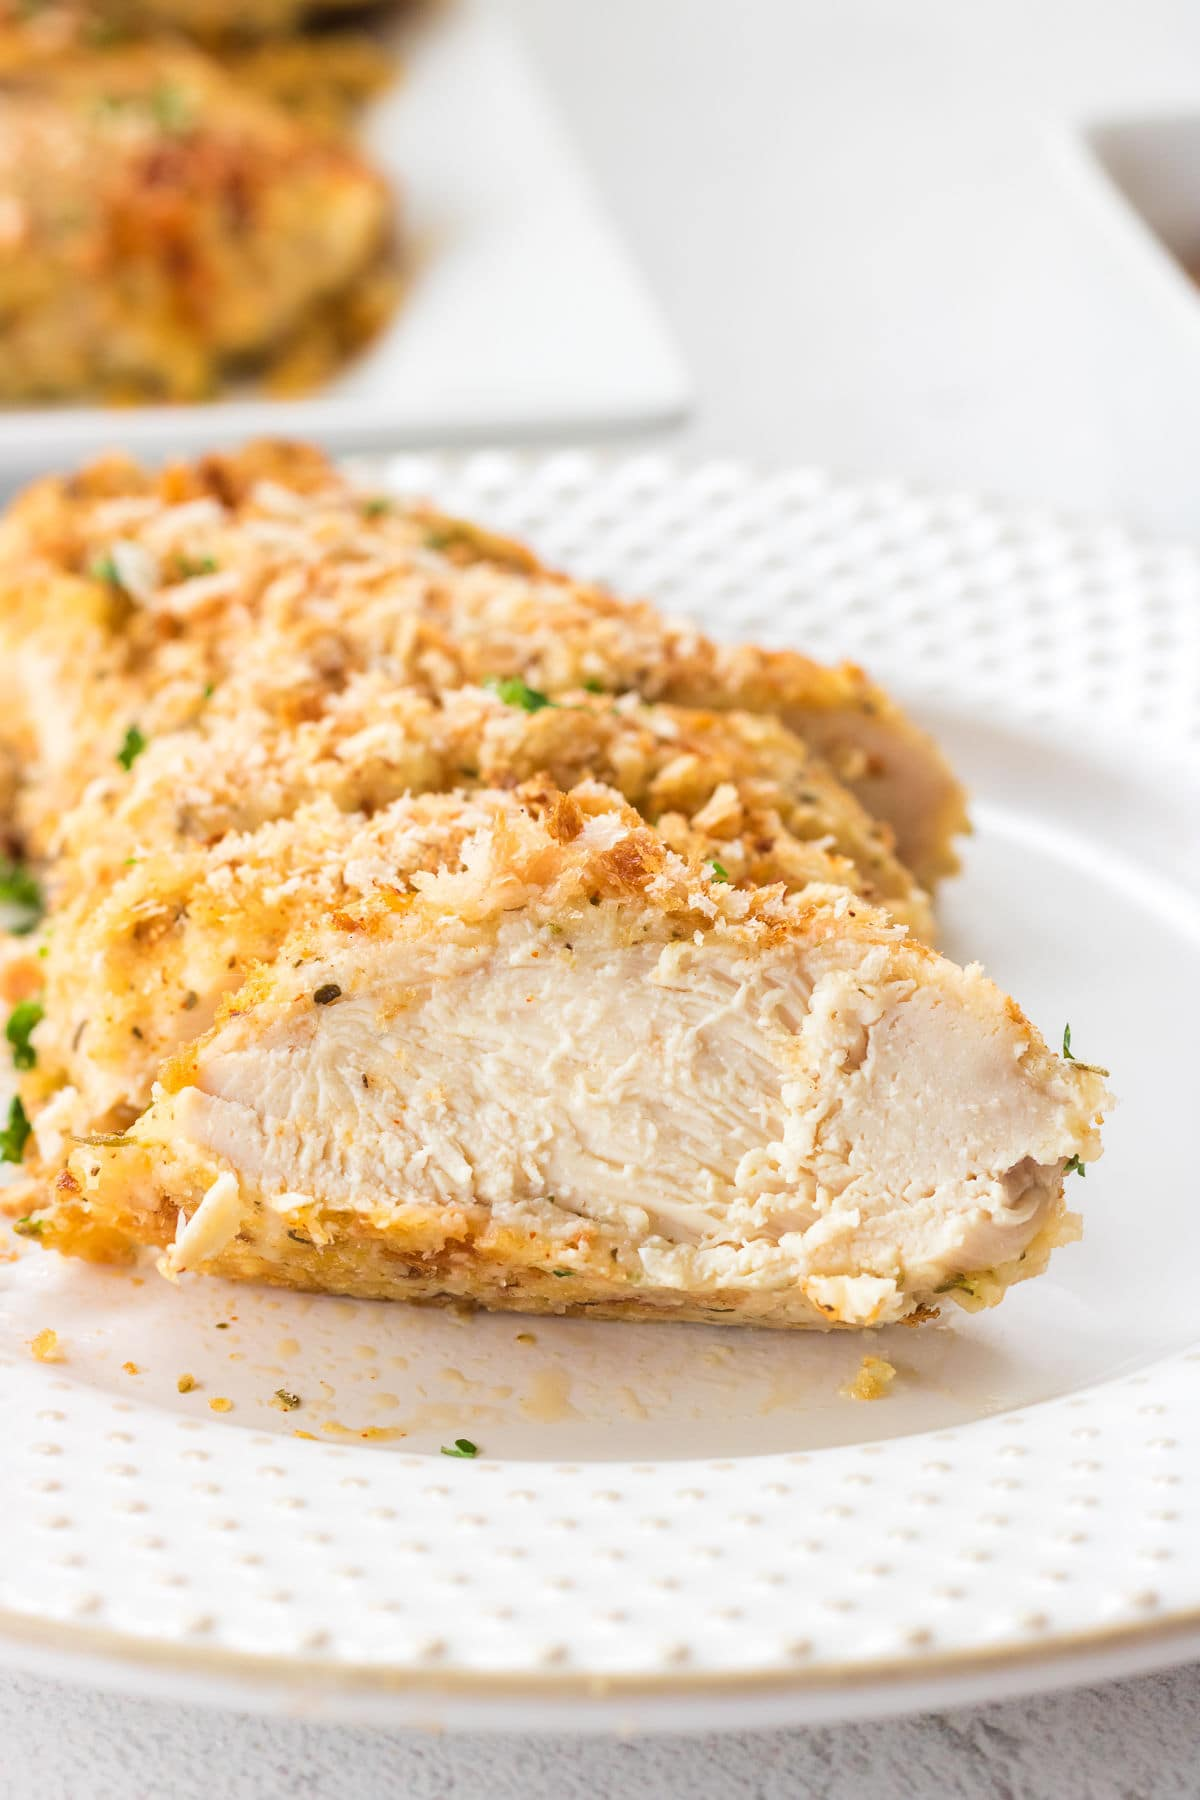 A close up of the finished chicken dish, sliced in bite sized pieces.